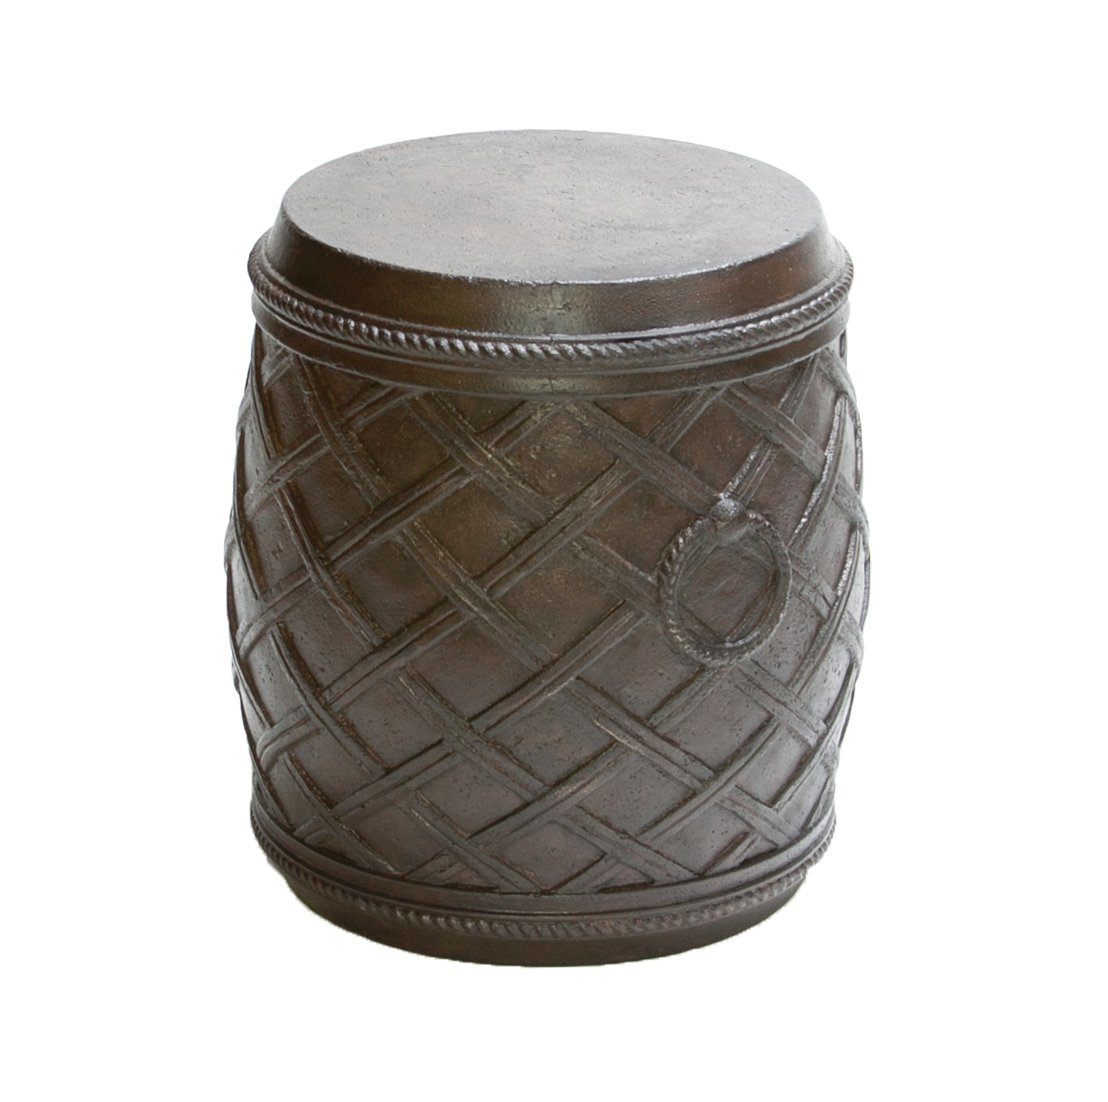 peakseason moroccan drum side table reviews bombay outdoors pineapple umbrella accent fireplace chairs concrete top coffee hallway lamp wood pedestal end target shoe rack outdoor